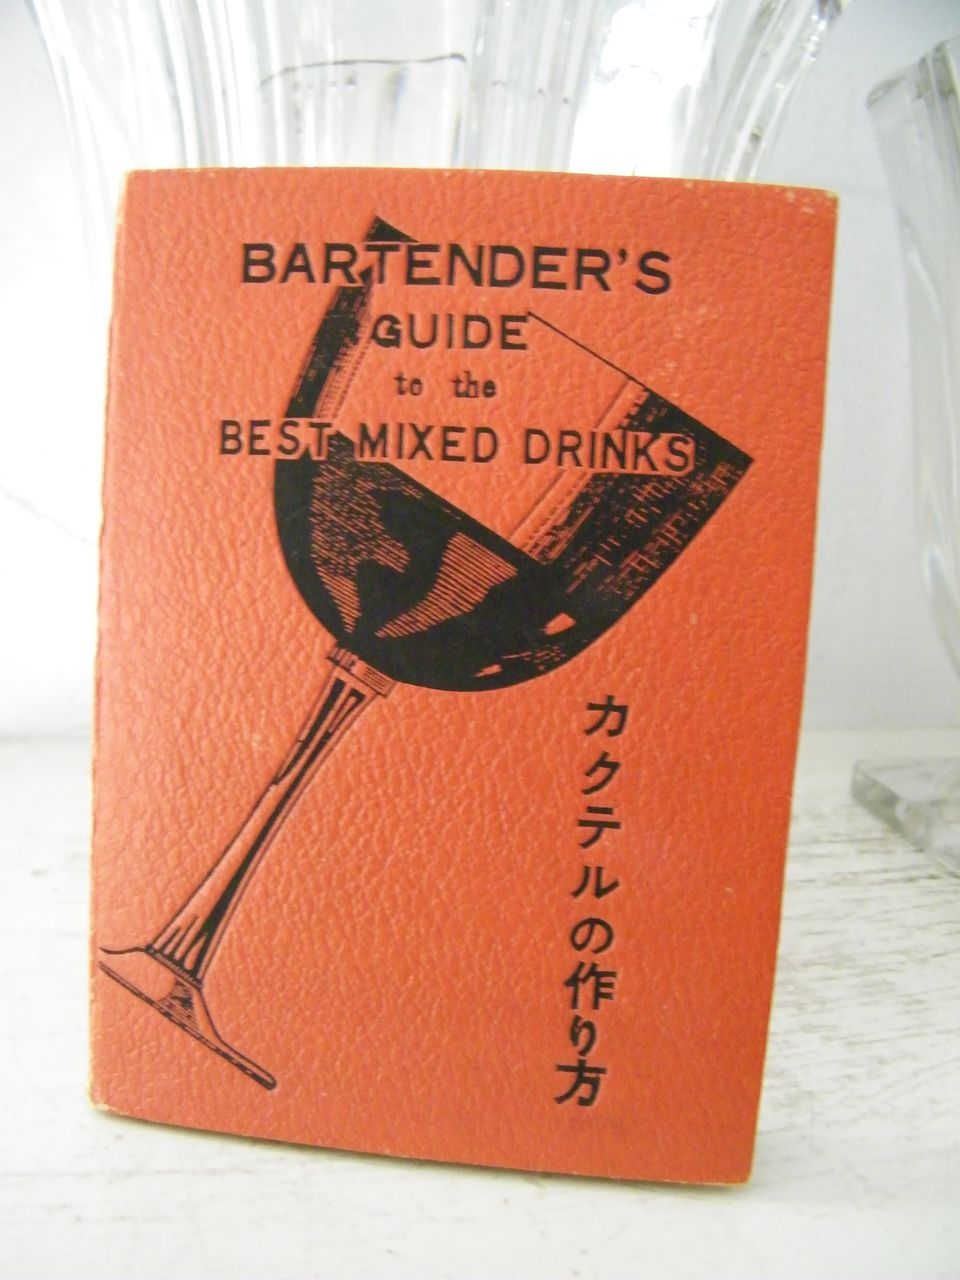 Bartender's Guide 1st Edition  Japanese & English SCARCE!